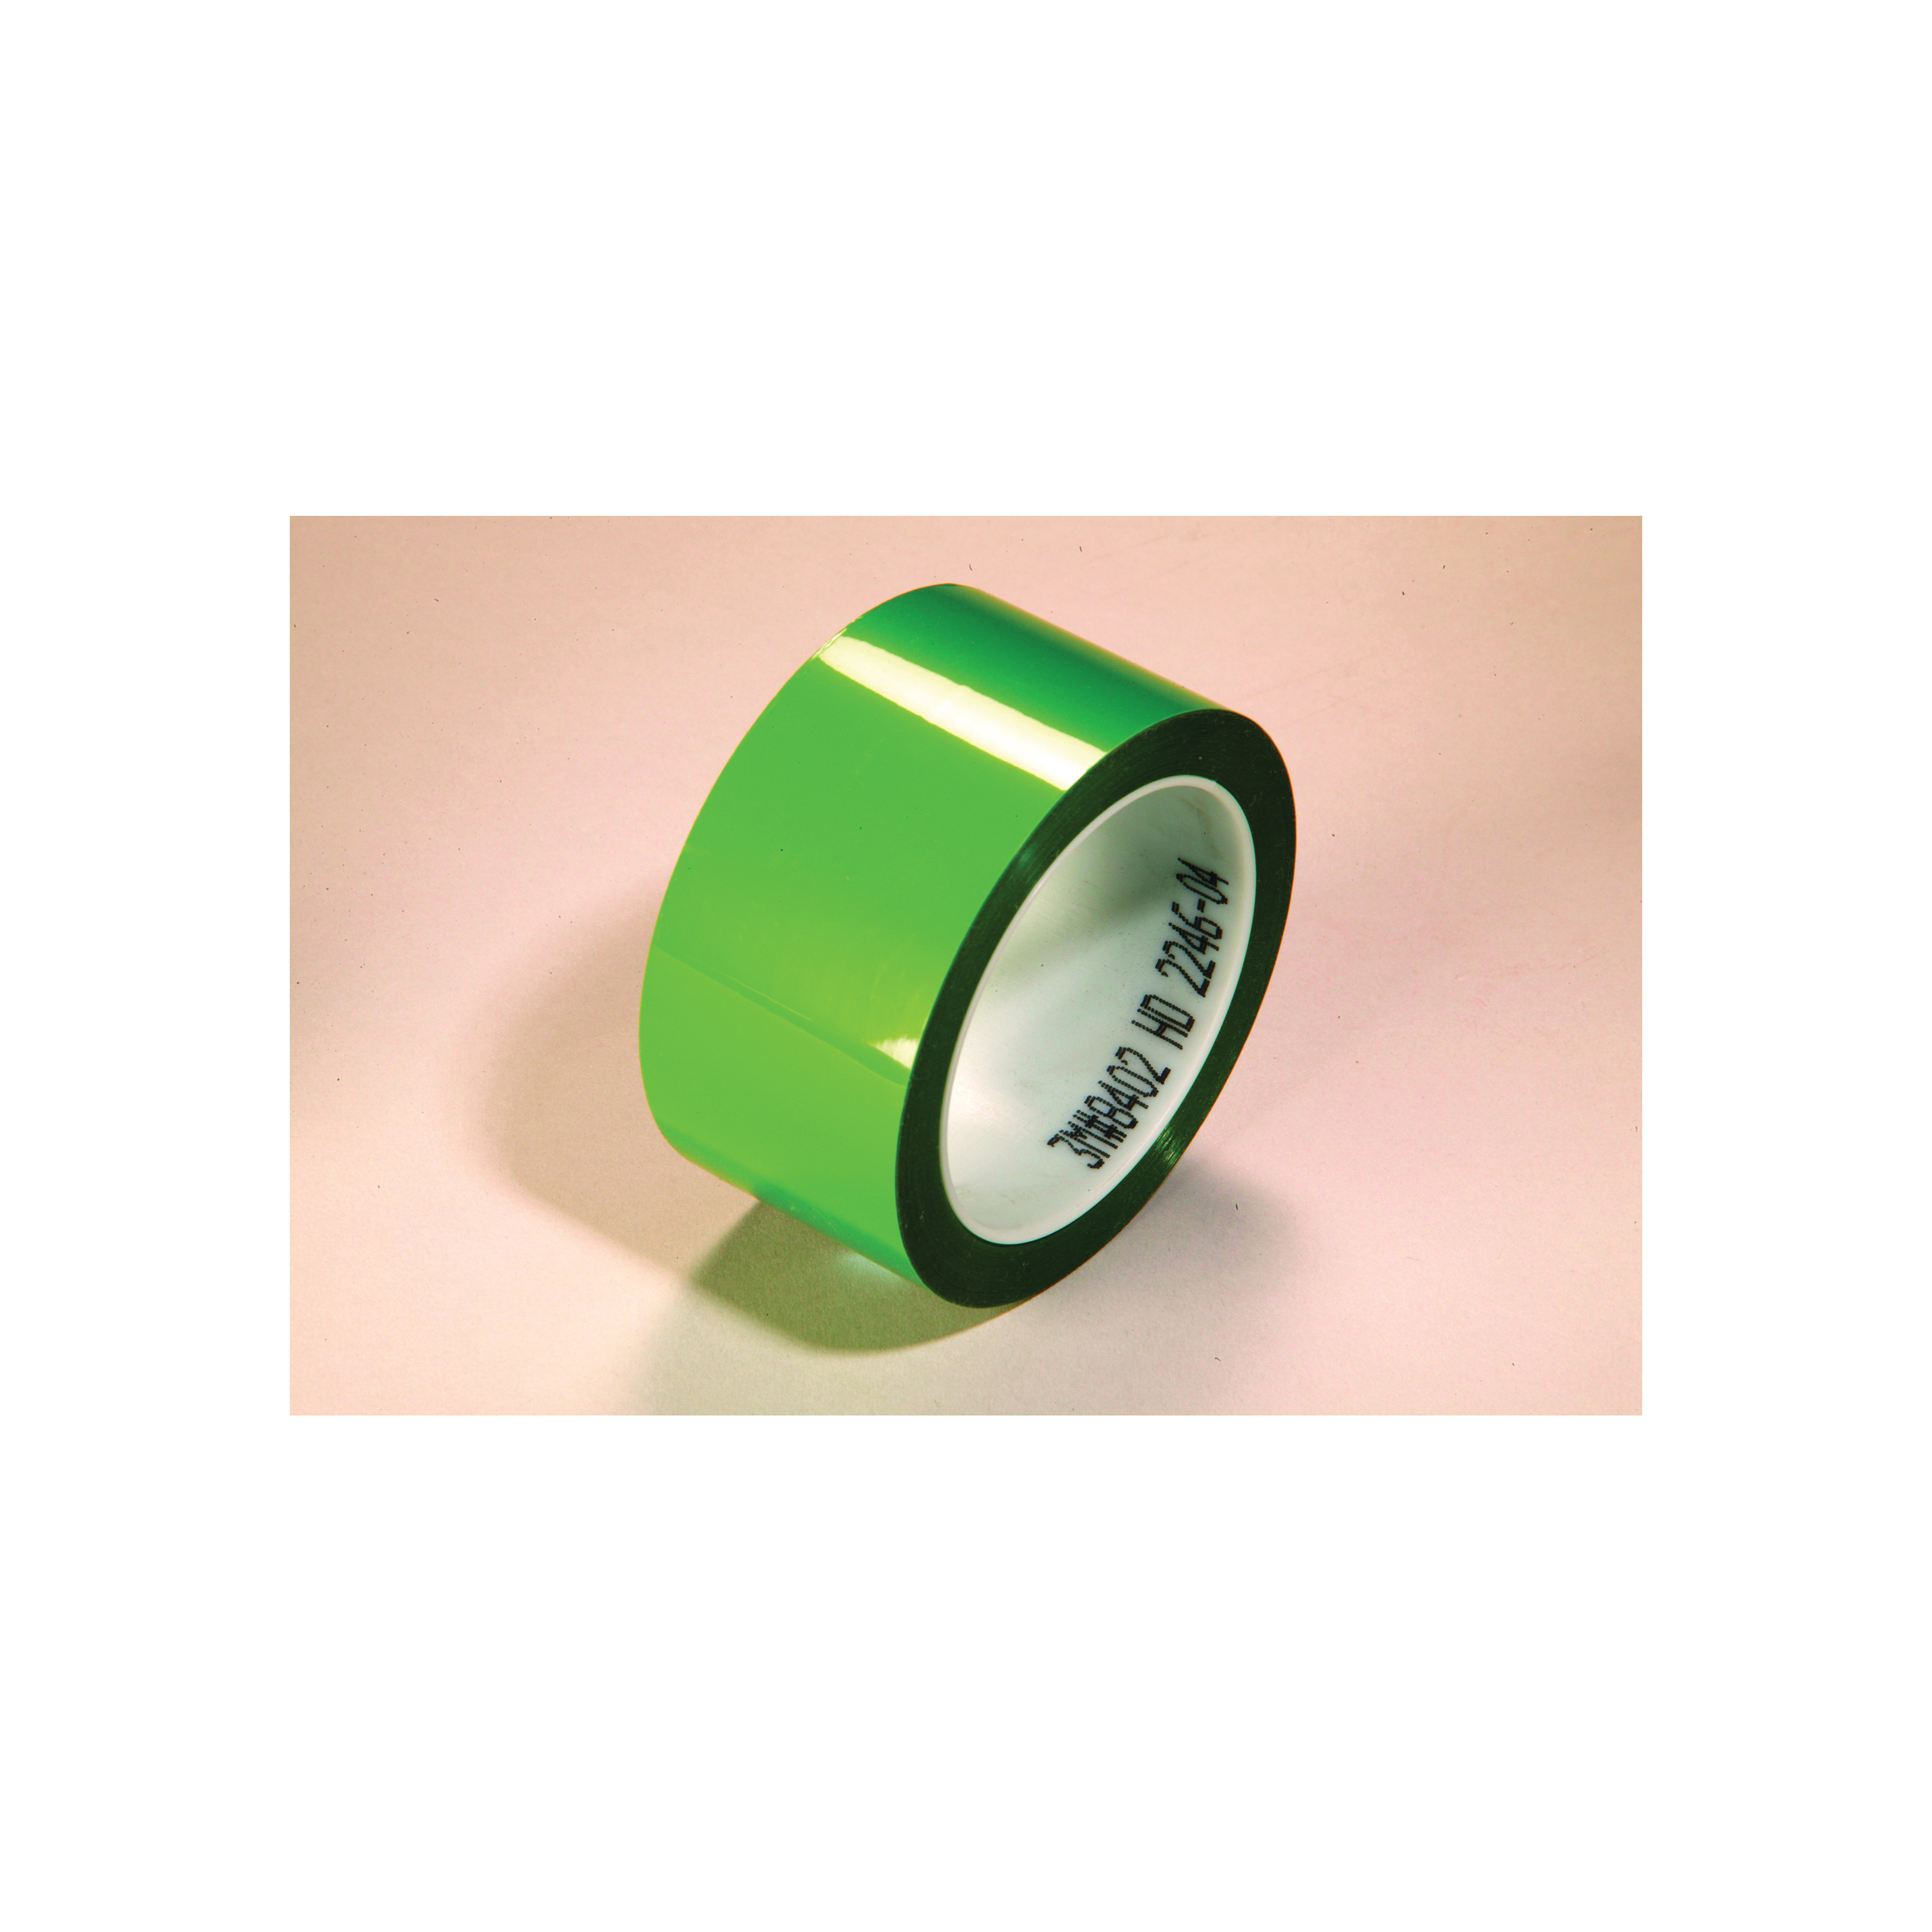 3M™ 021200-05689 Masking Tape, 72 yd L x 3 in W, 1.9 mil THK, Silicone Adhesive, 0.9 mil Polyester Backing